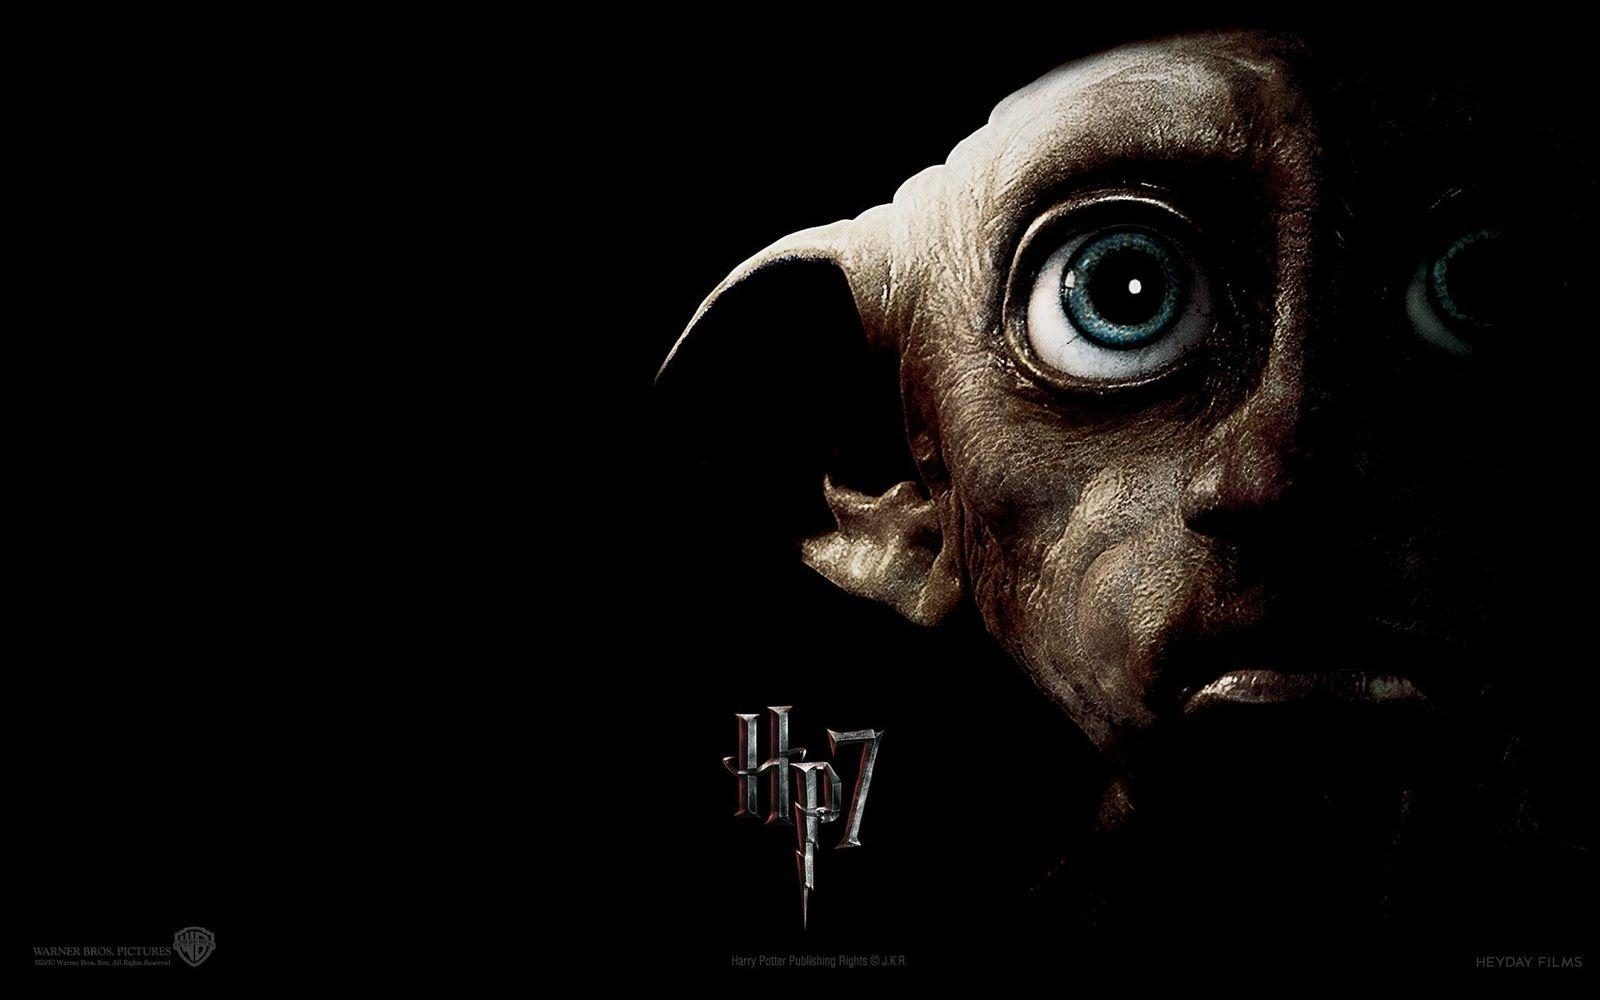 Harry Potter Dobby Wallpapers